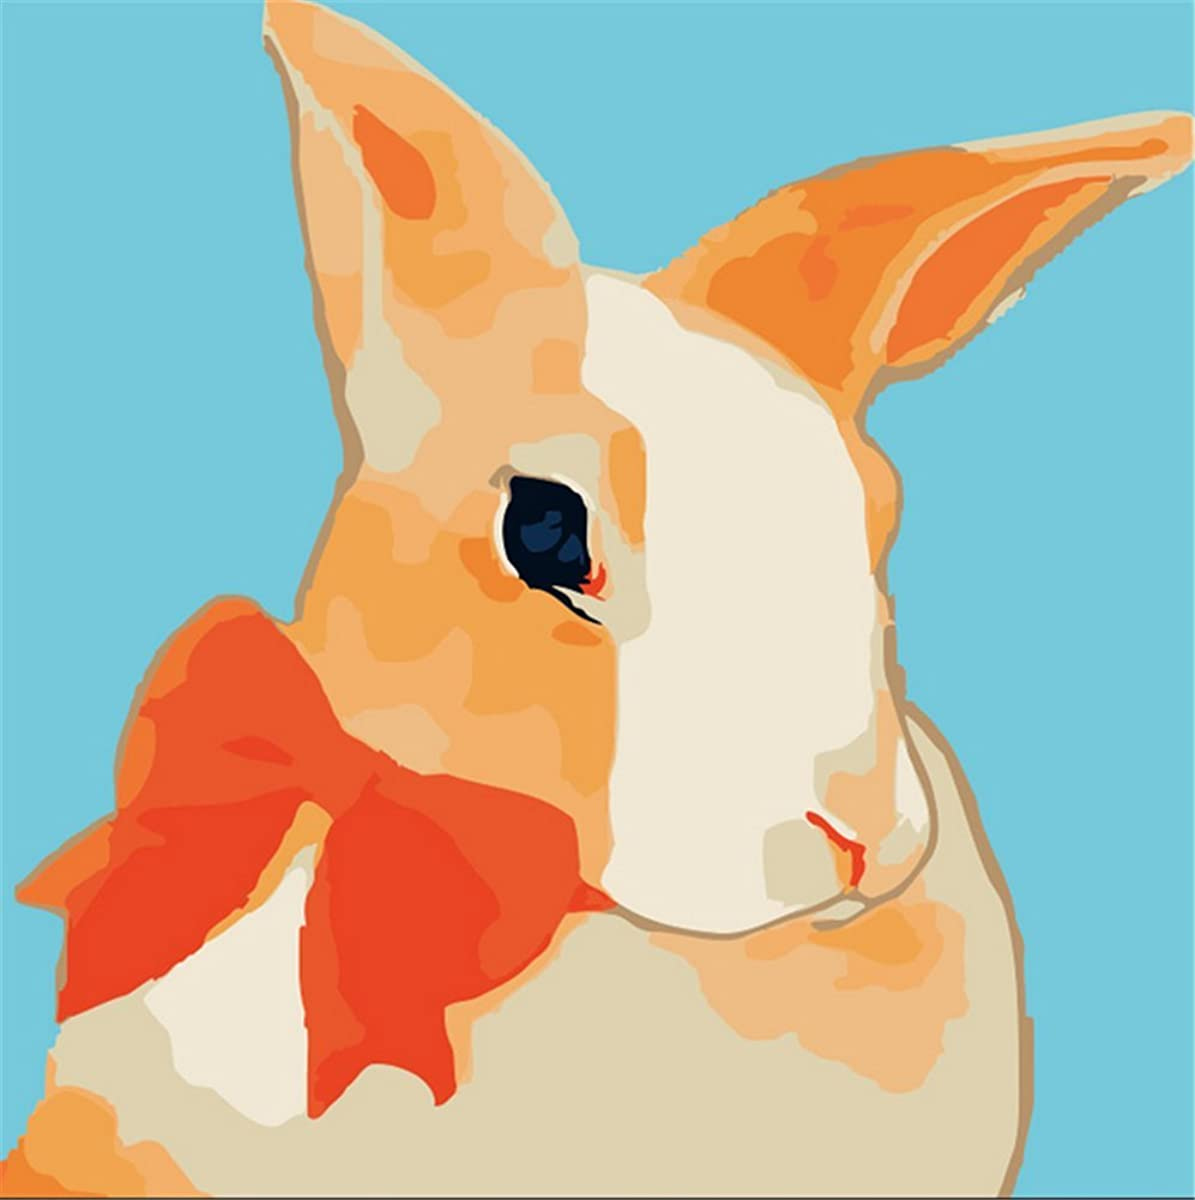 YEESAM ART New Paint by Numbers Kits for Kids, Diy Oil Painting - Miss Rabbit 25X25cm - Framed